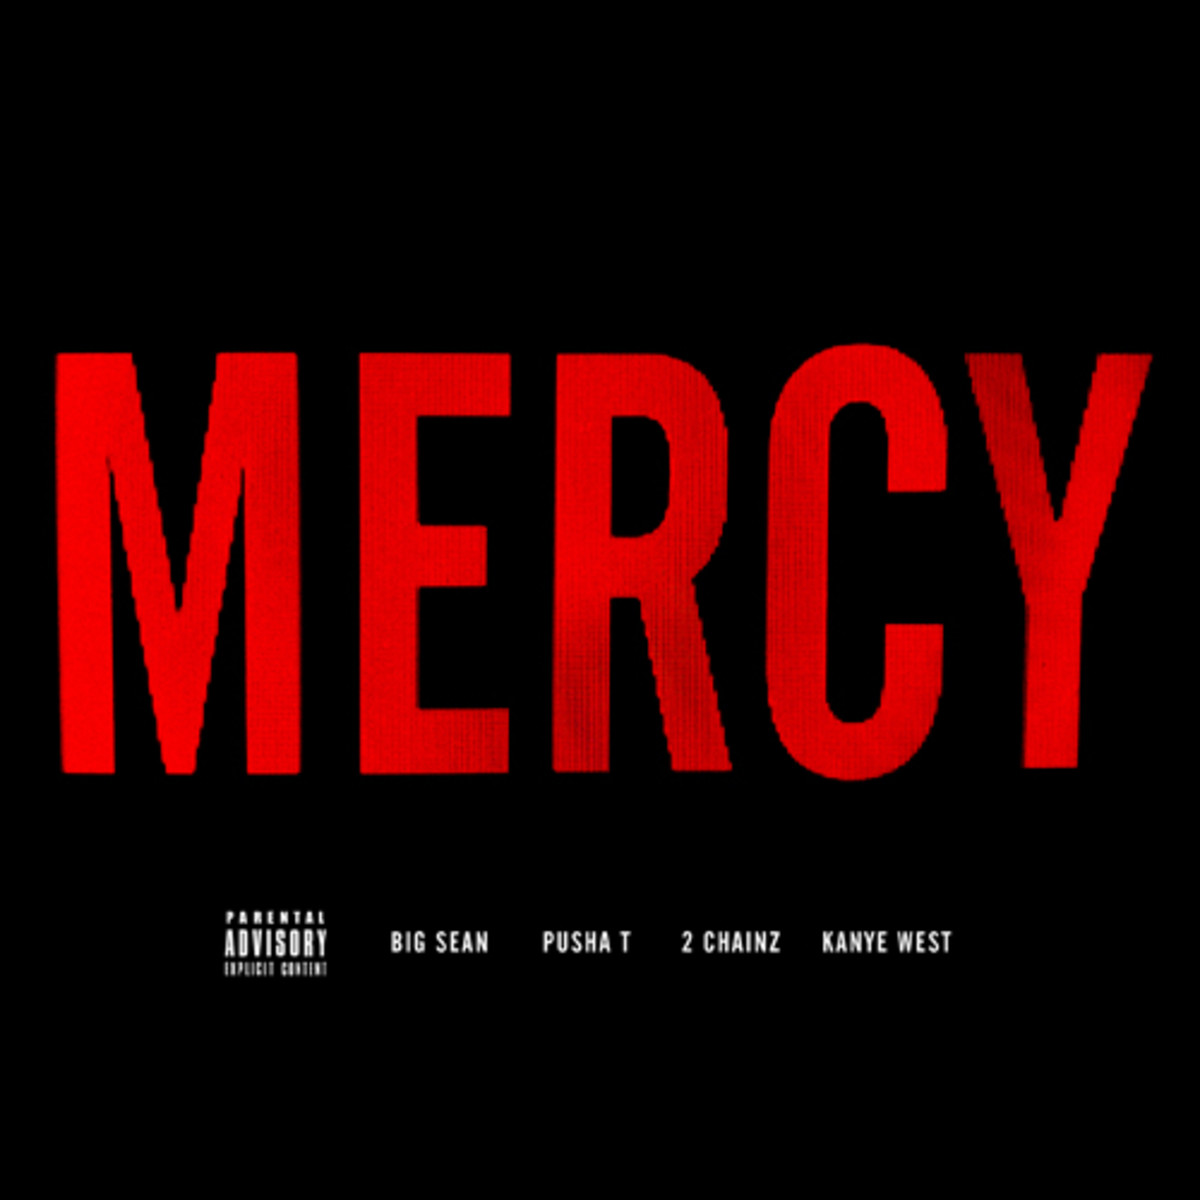 goodmusic-mercy.jpg